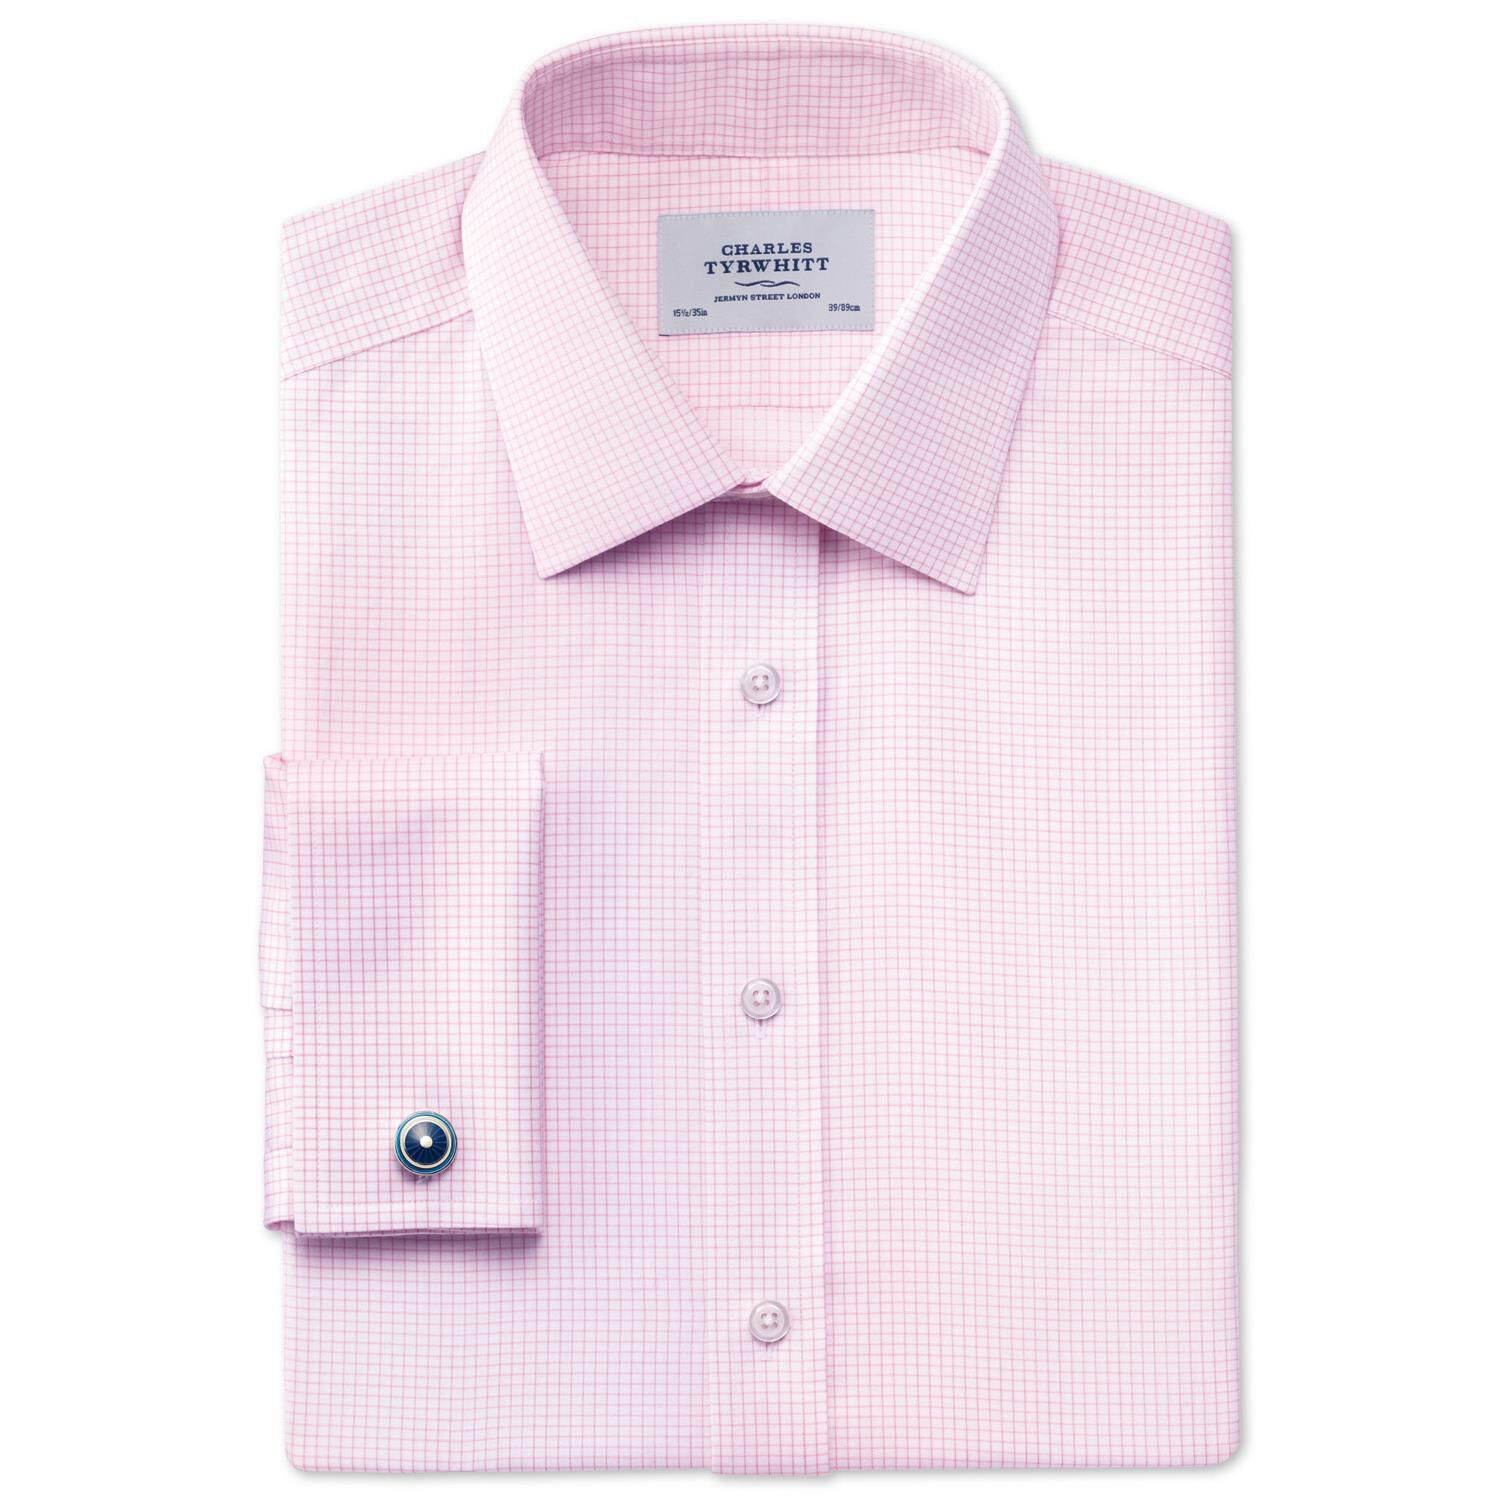 Extra Slim Fit Non-Iron Windsor Check Pink Cotton Formal Shirt Double Cuff Size 15/35 by Charles Tyr